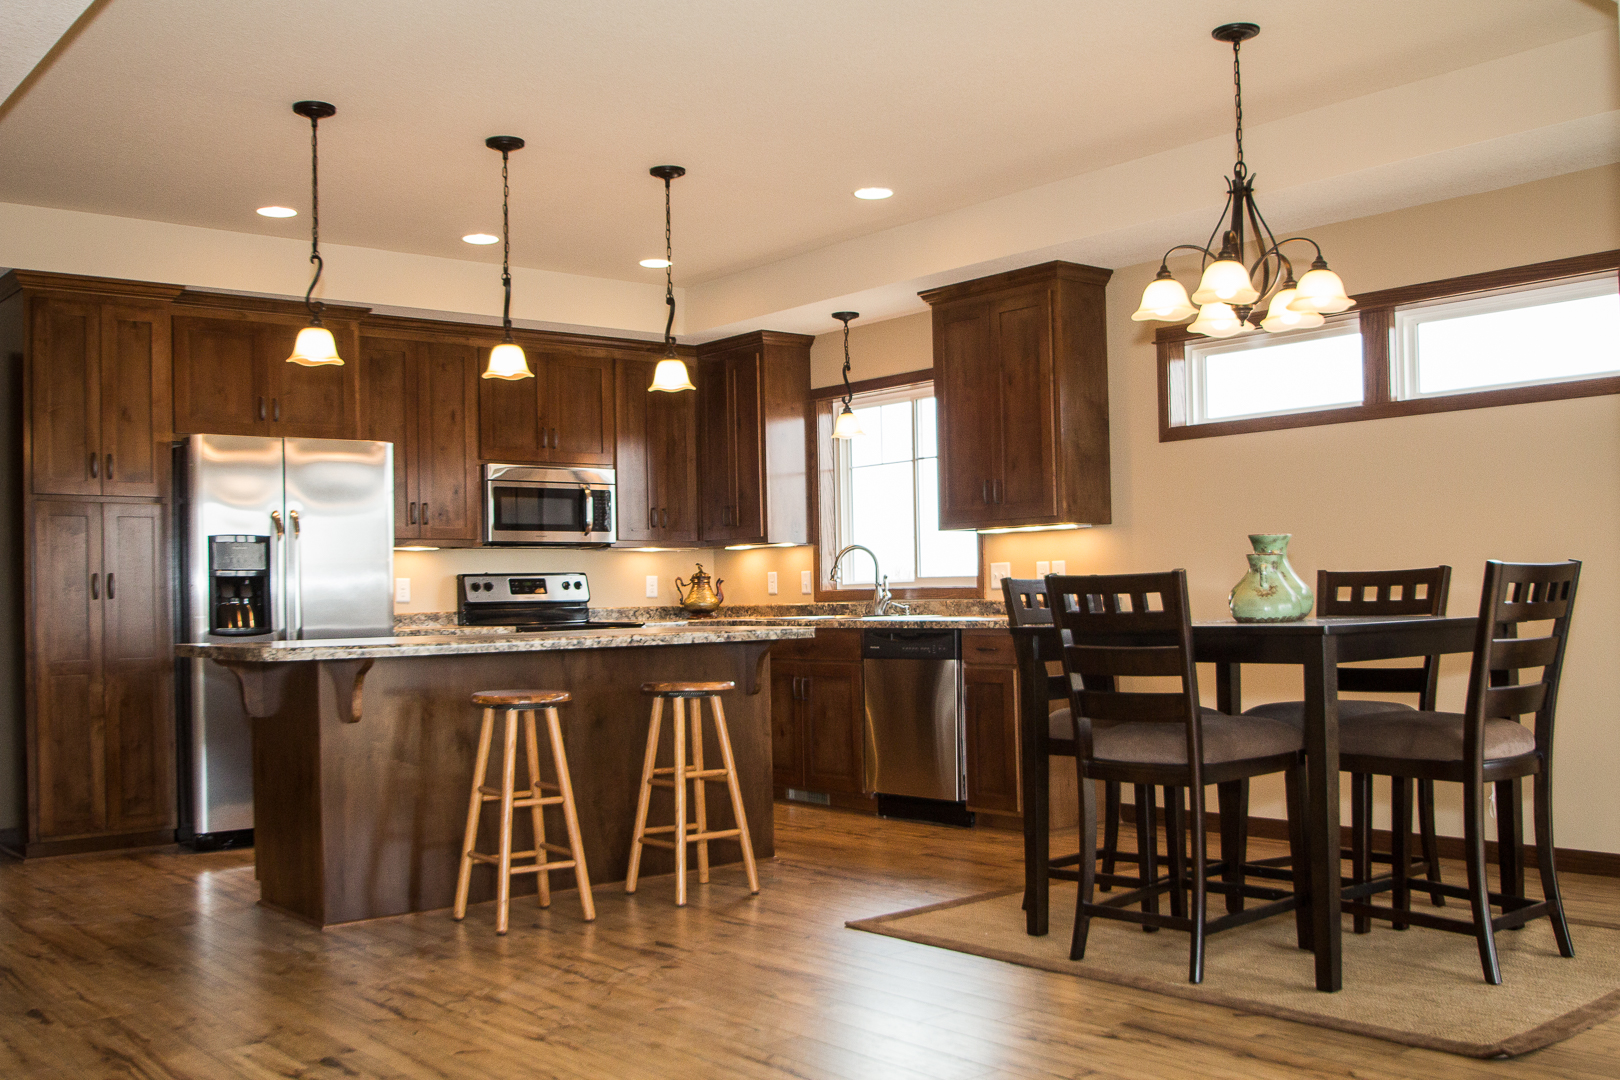 Custom Home Construction & Remodeling Contractor: Sauk